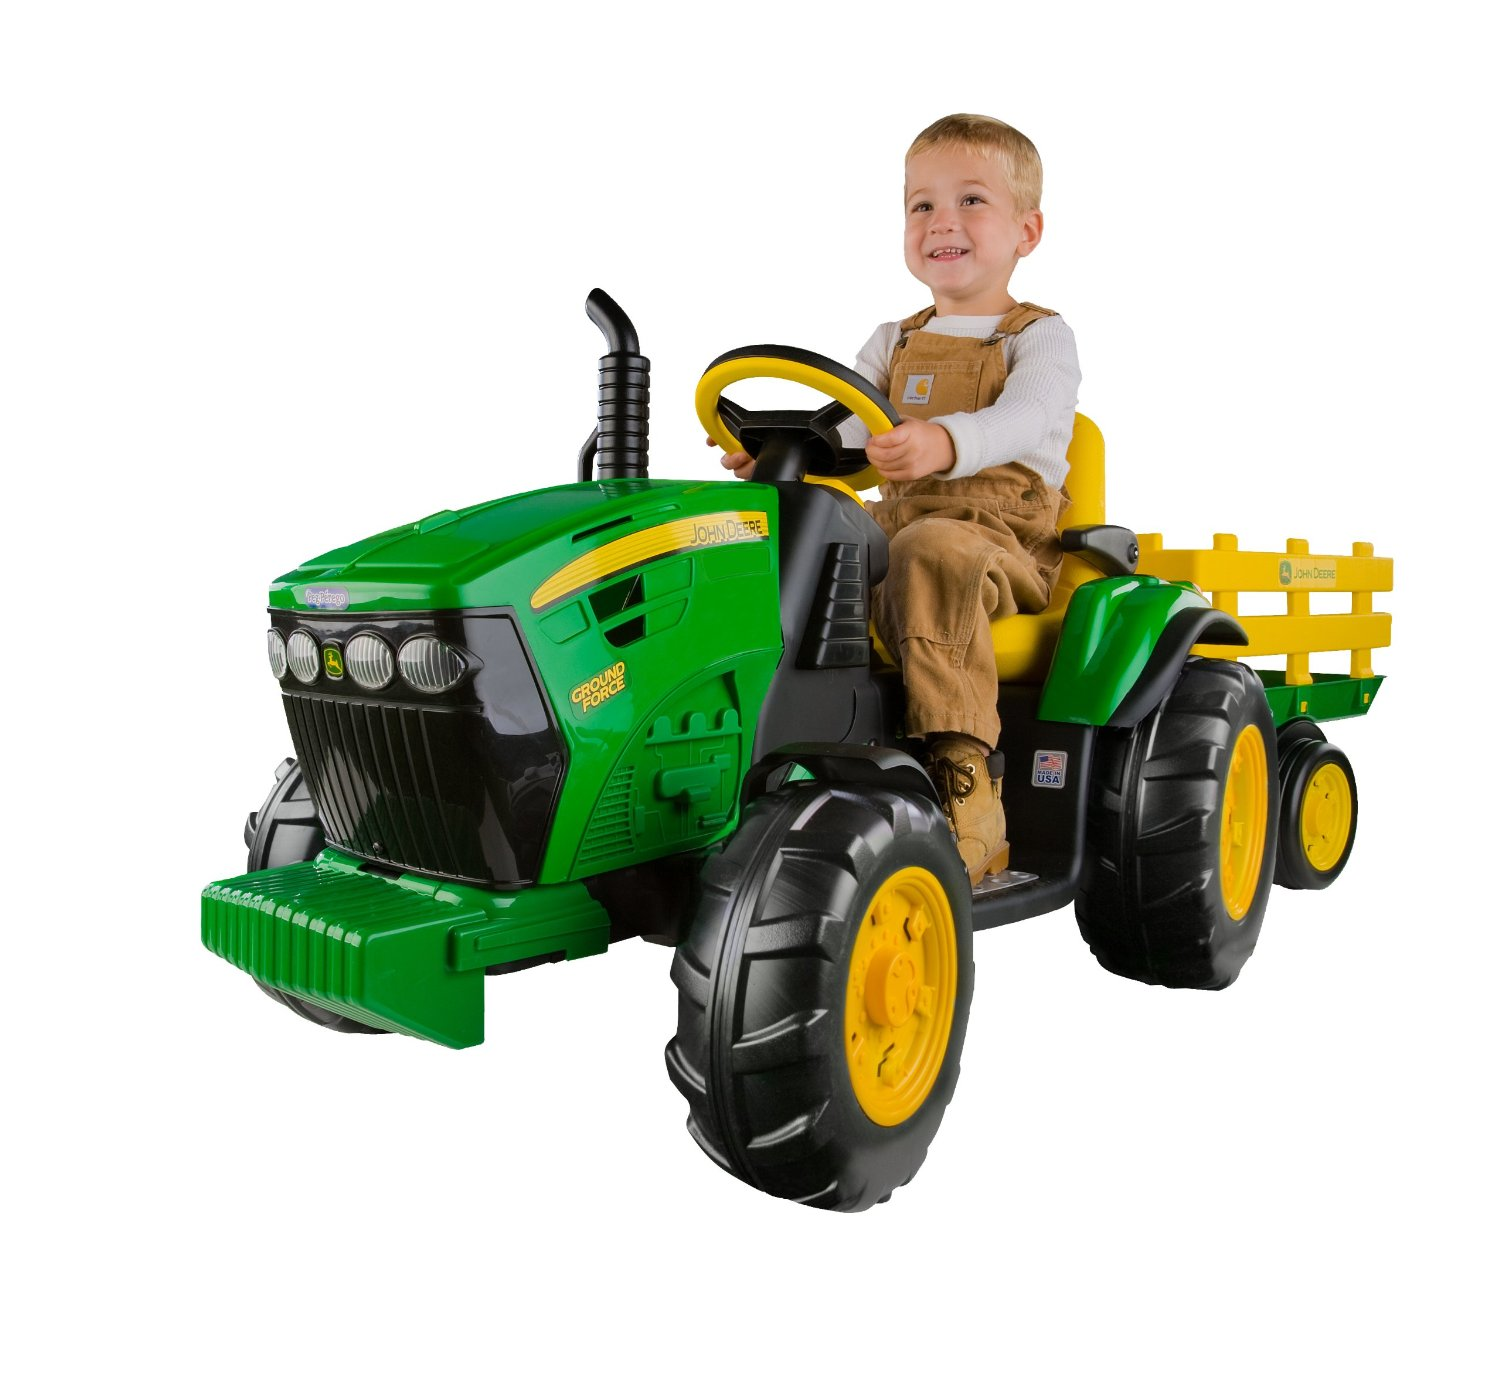 Peg Perego John Deere Ground Force Tractor Ride On with Trailer, FM radio and Adjustable Seat